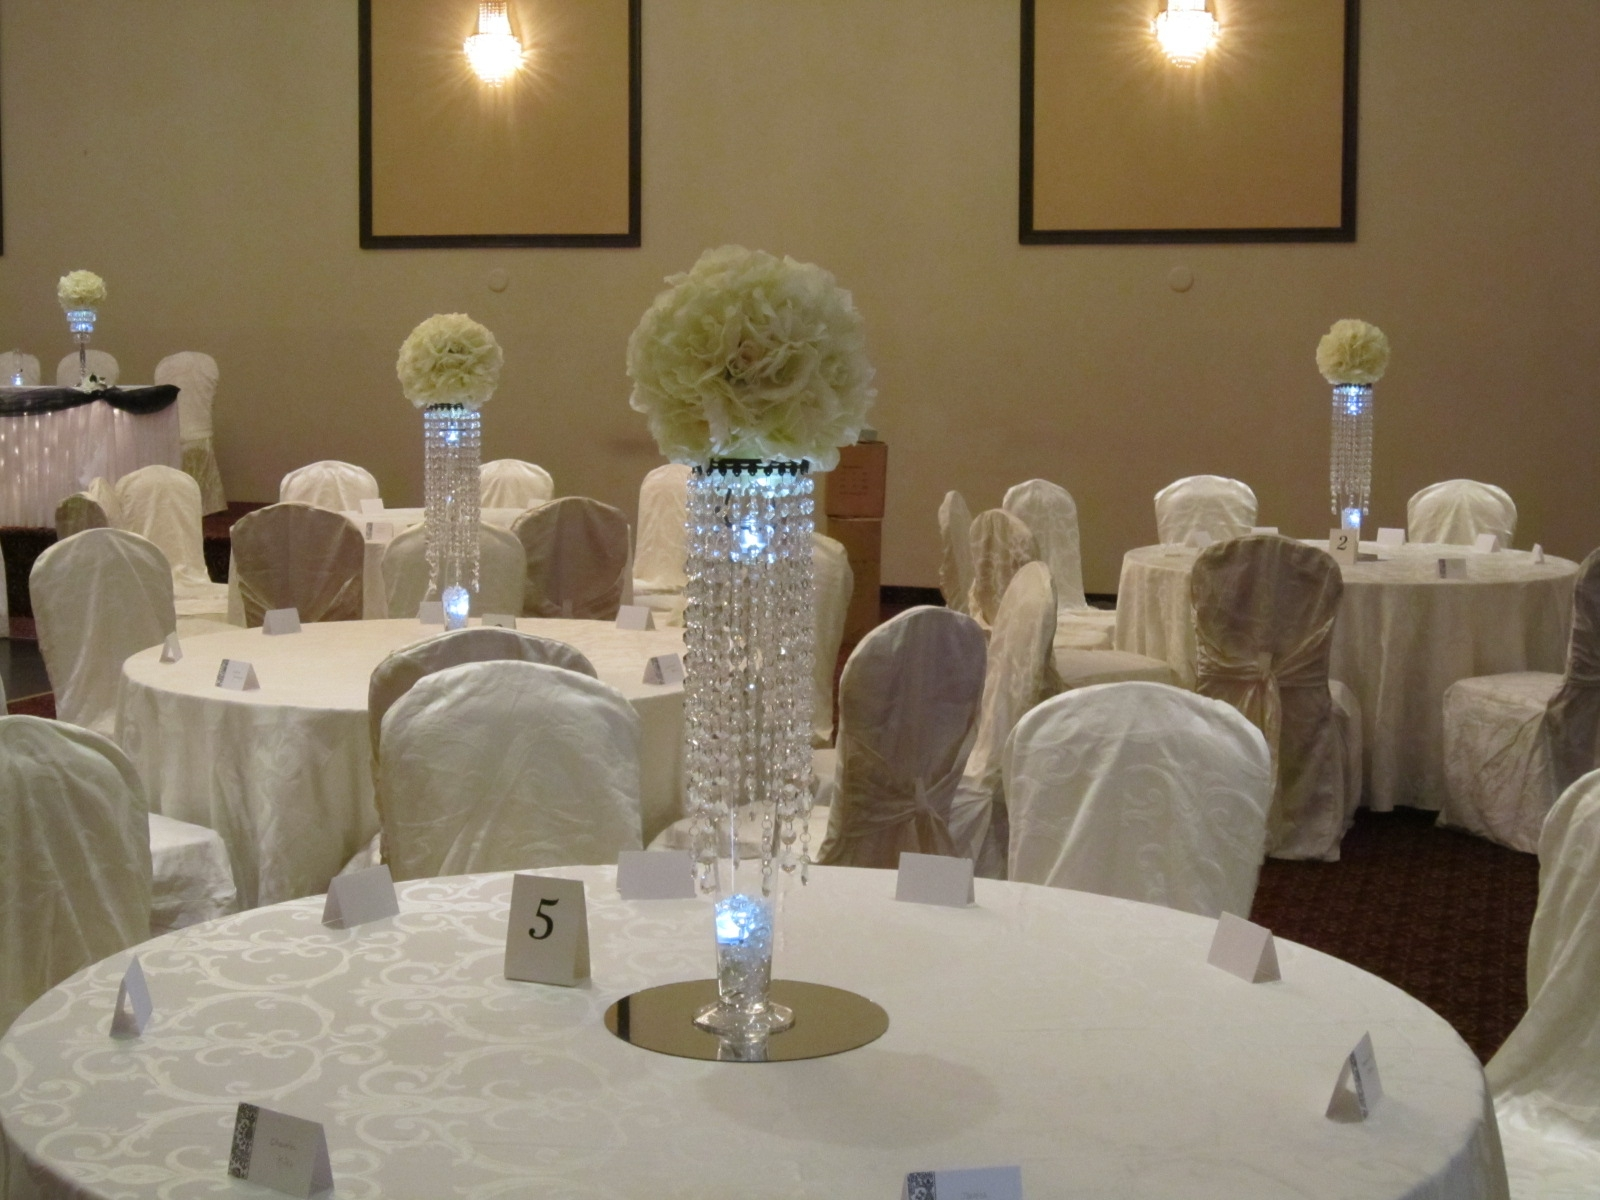 Elegant wedding centerpieces - Awesome Brand New How To Choose The Right Wedding Centerpieces For Round Table Inside Wedding